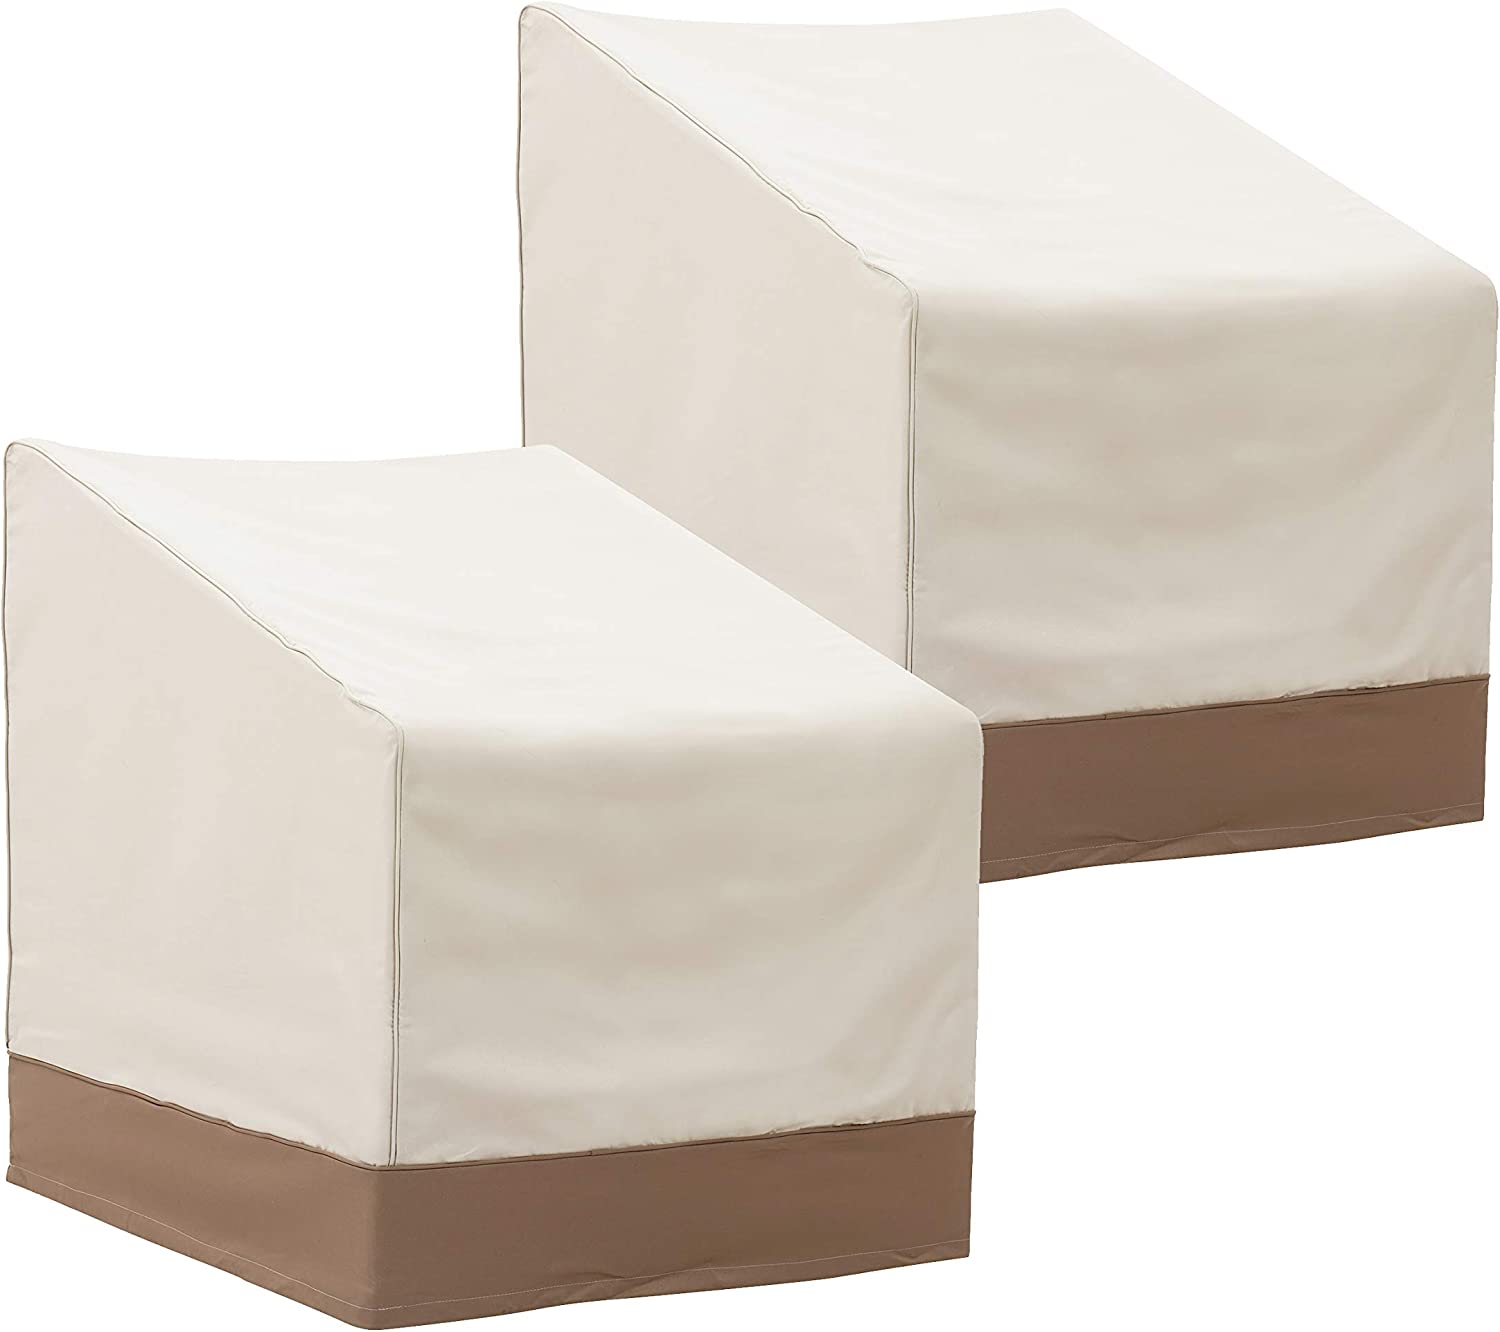 """Finnhomy Outdoor Patio Chair Cover Set of 2 Waterproof Large Patio Lounge/Club Chair Cover Heavy Duty Outdoor Furniture Cover Weather/Fade Resistant, 31.5"""" L X 33.5"""" D X 35.8"""" H"""